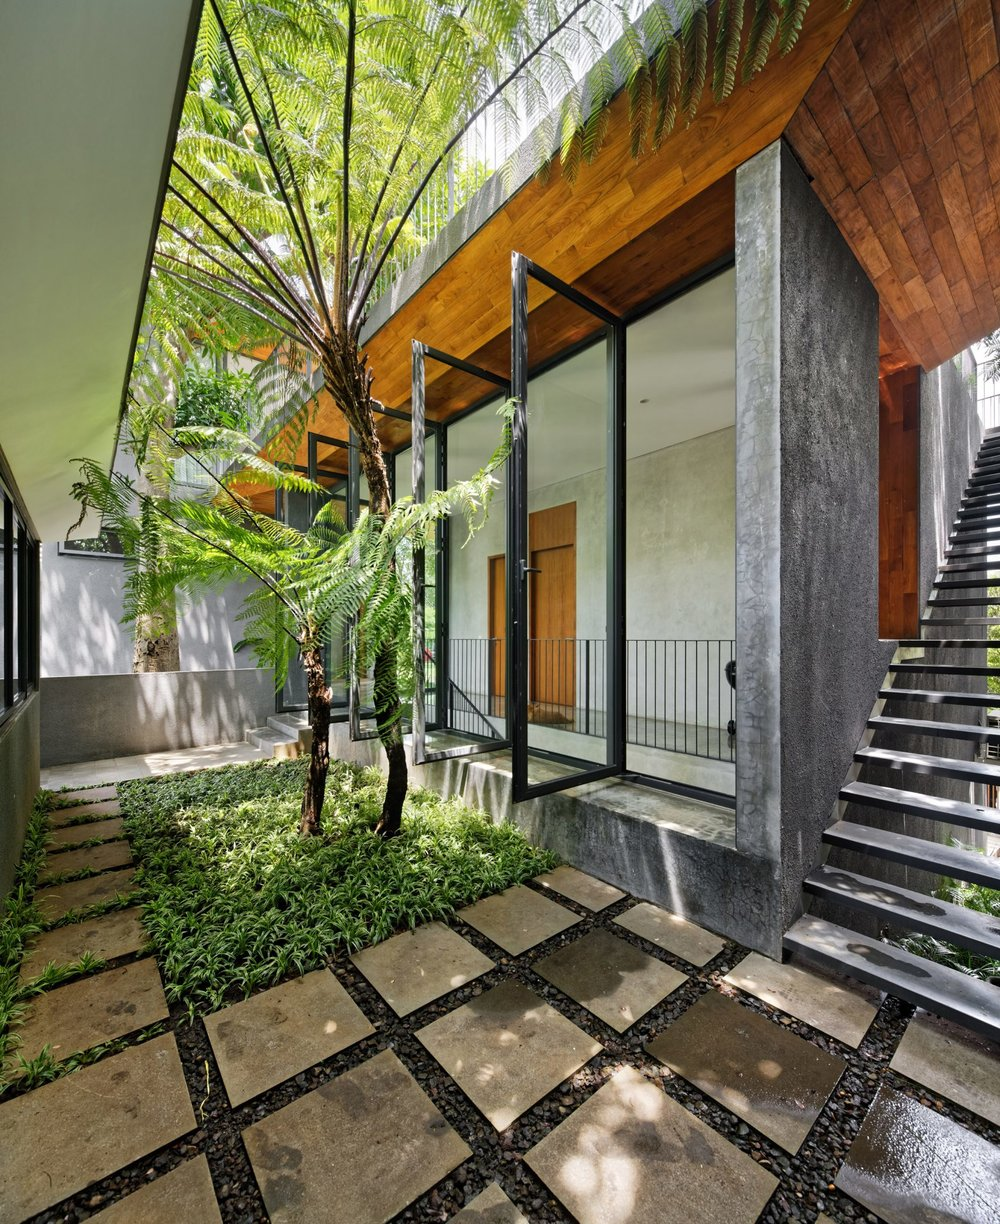 house-inside-outside-tamara-wibowo-architecture-residential-indonesia_dezeen_2364_col_12-1704x2086.jpg